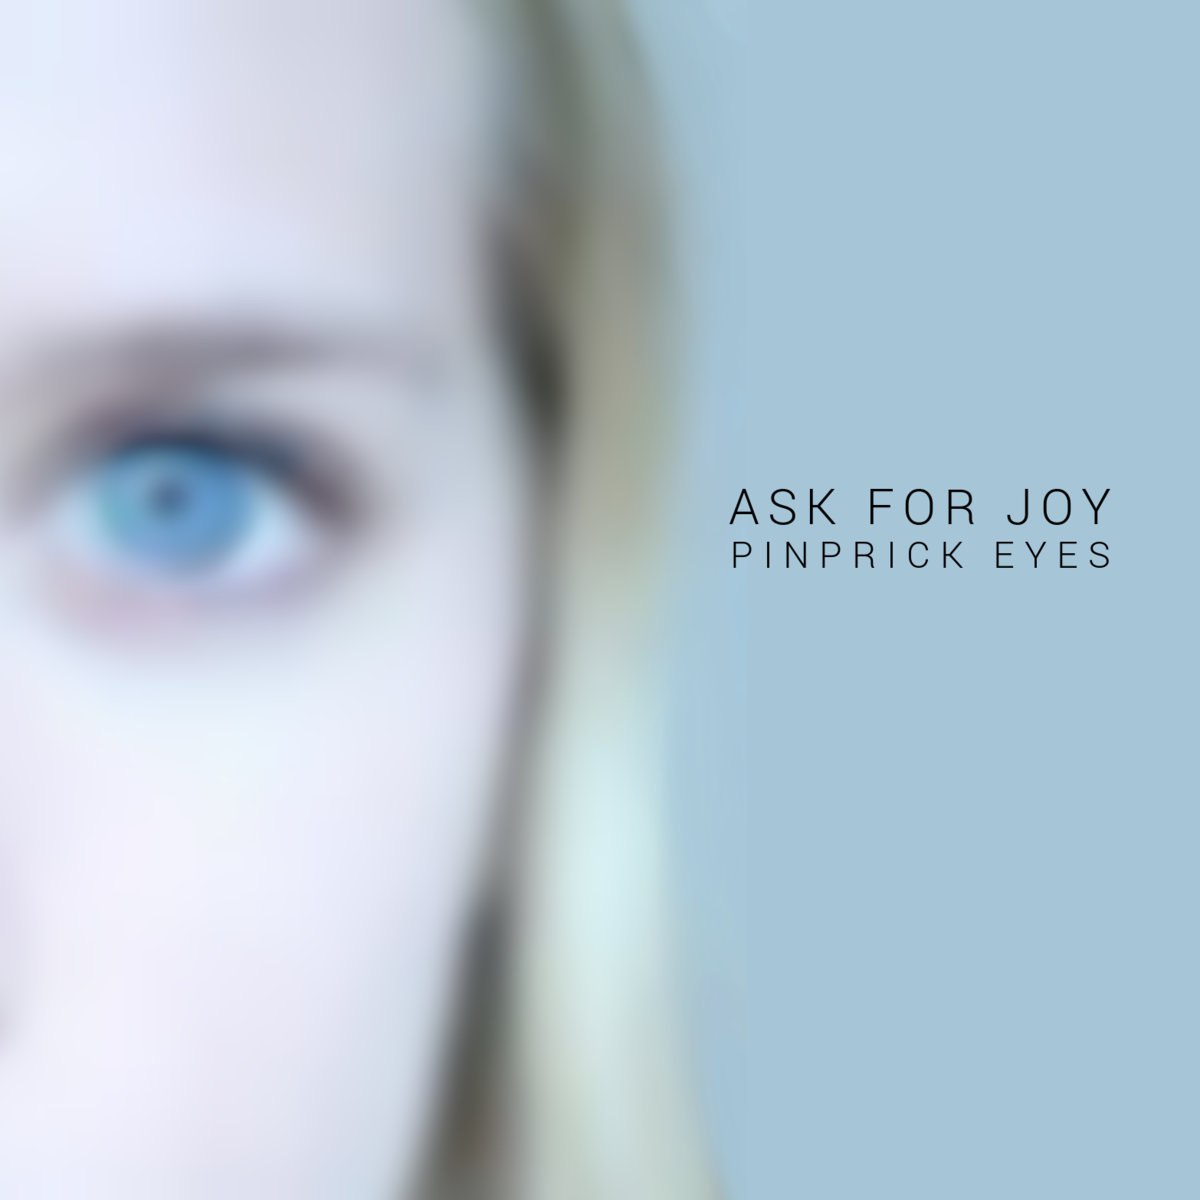 Ask for Joy - Pinprick Eyes